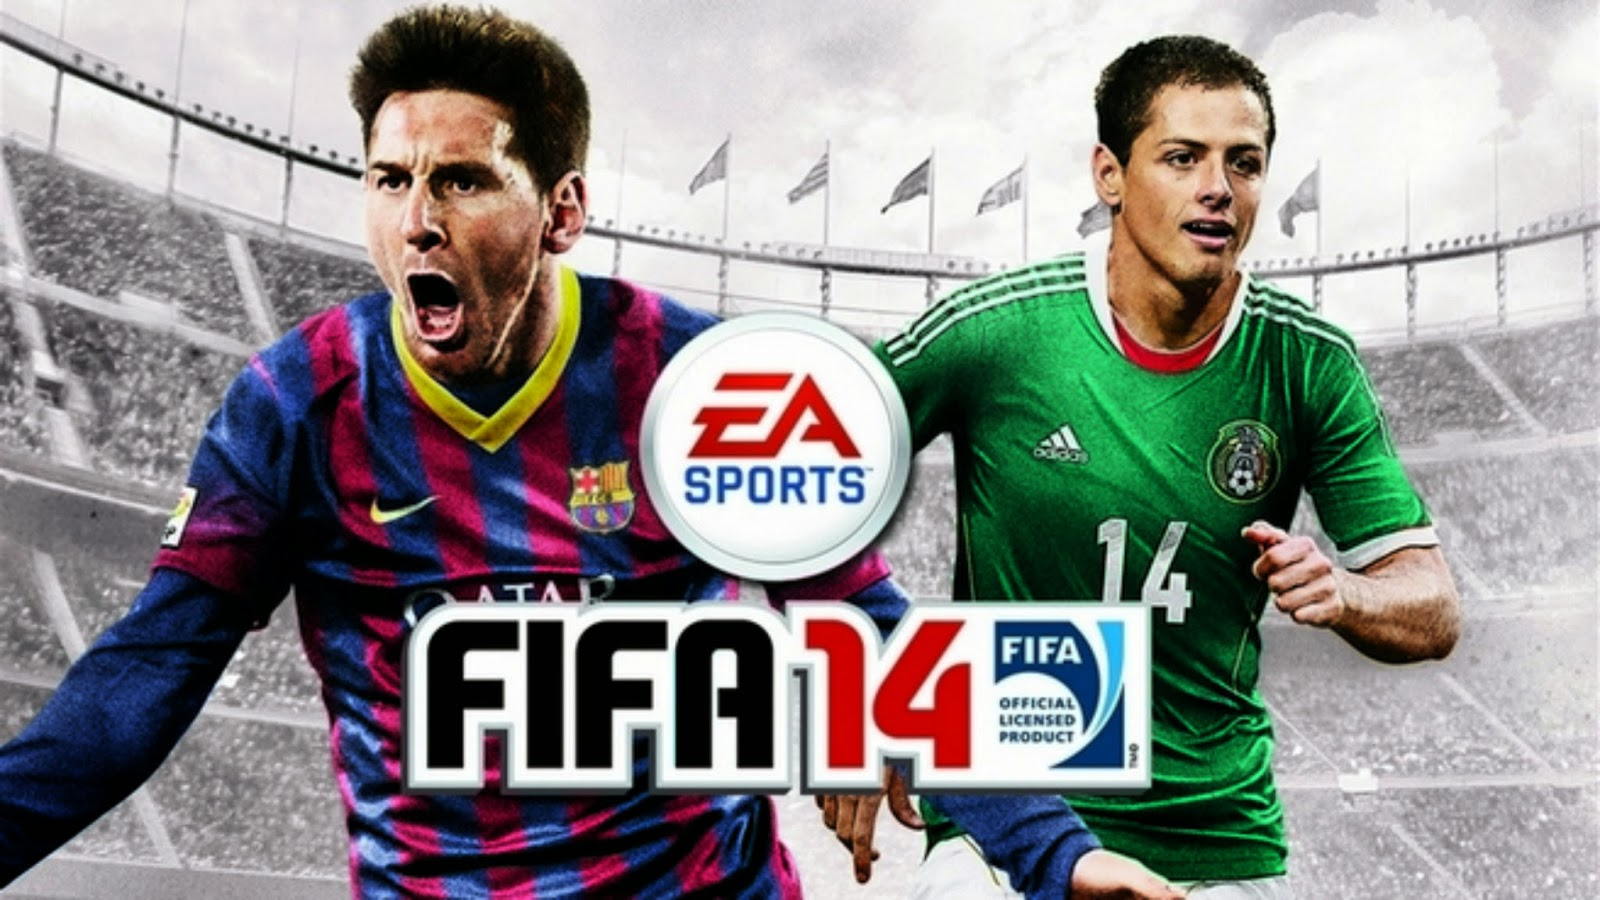 FIFA 14 by EA SPORTS Android Apk Data Free